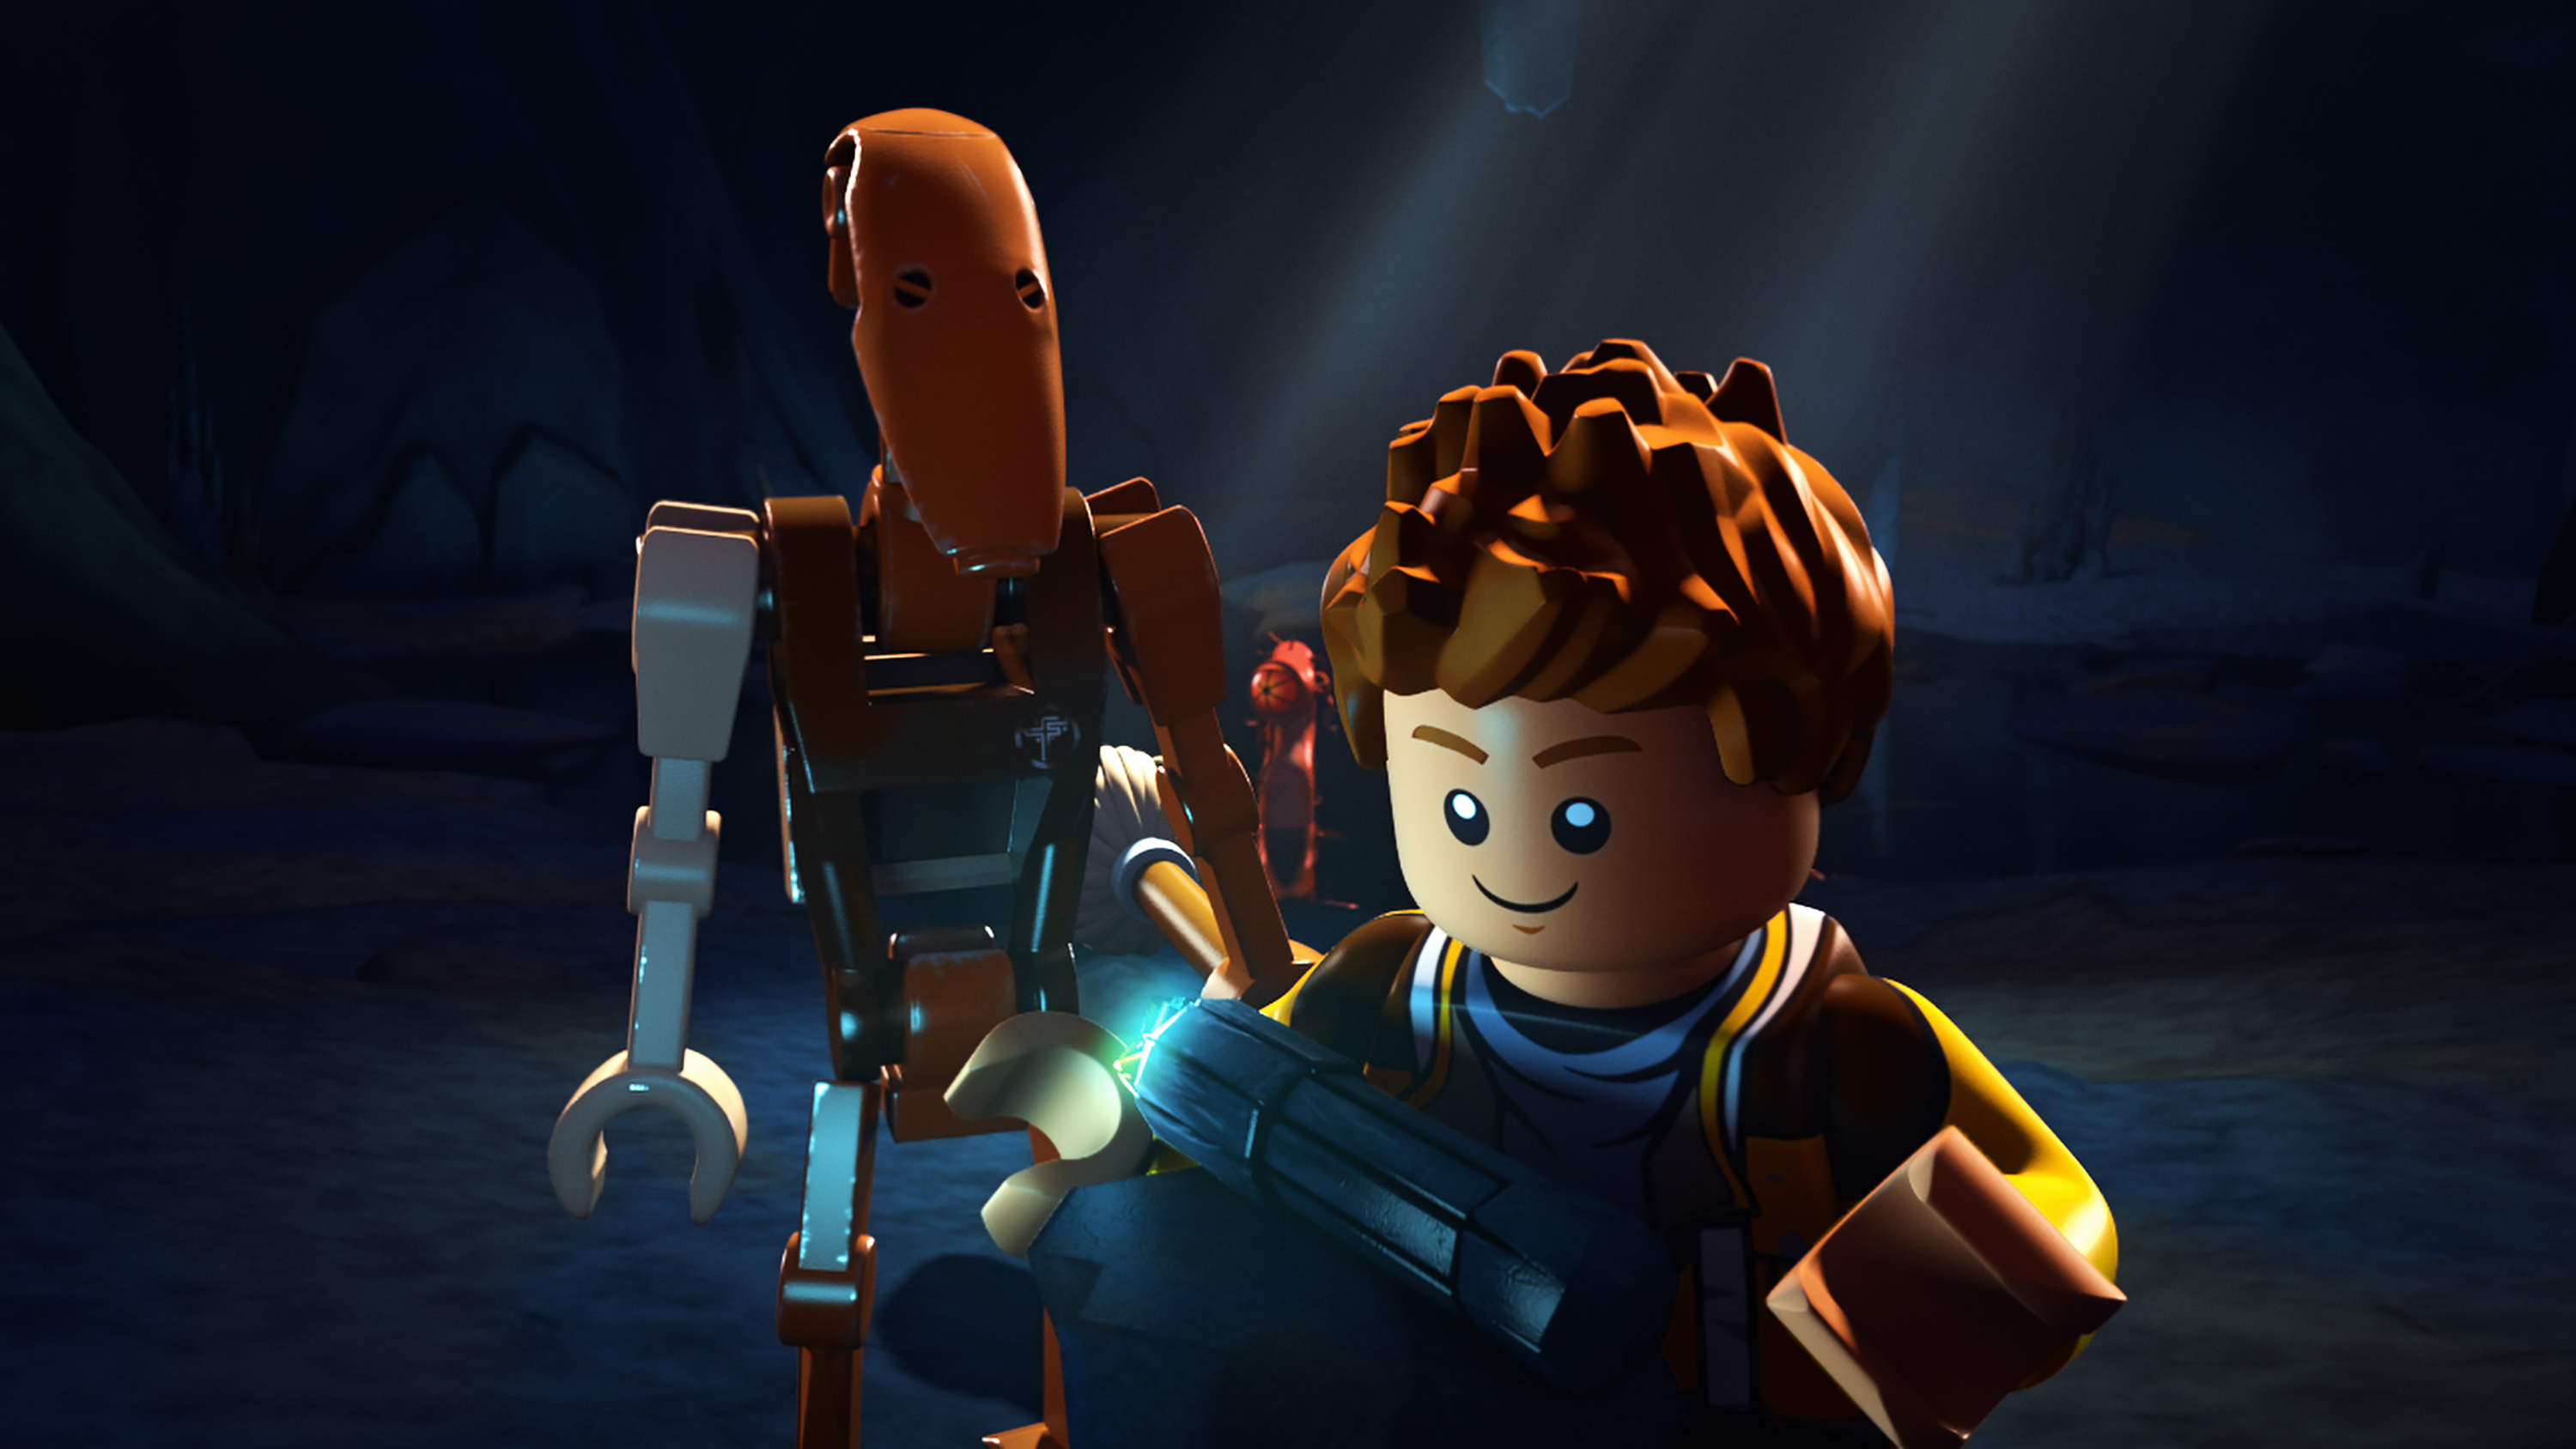 "LEGO STAR WARS: THE FREEMAKER ADVENTURES - Introducing new heroes and villains to the LEGO Star Wars universe, the animated television series ""LEGO Star Wars: The Freemaker Adventures"" will premiere MONDAY, JUNE 20 (10:00 a.m. EST) on Disney XD. (Disney XD)."